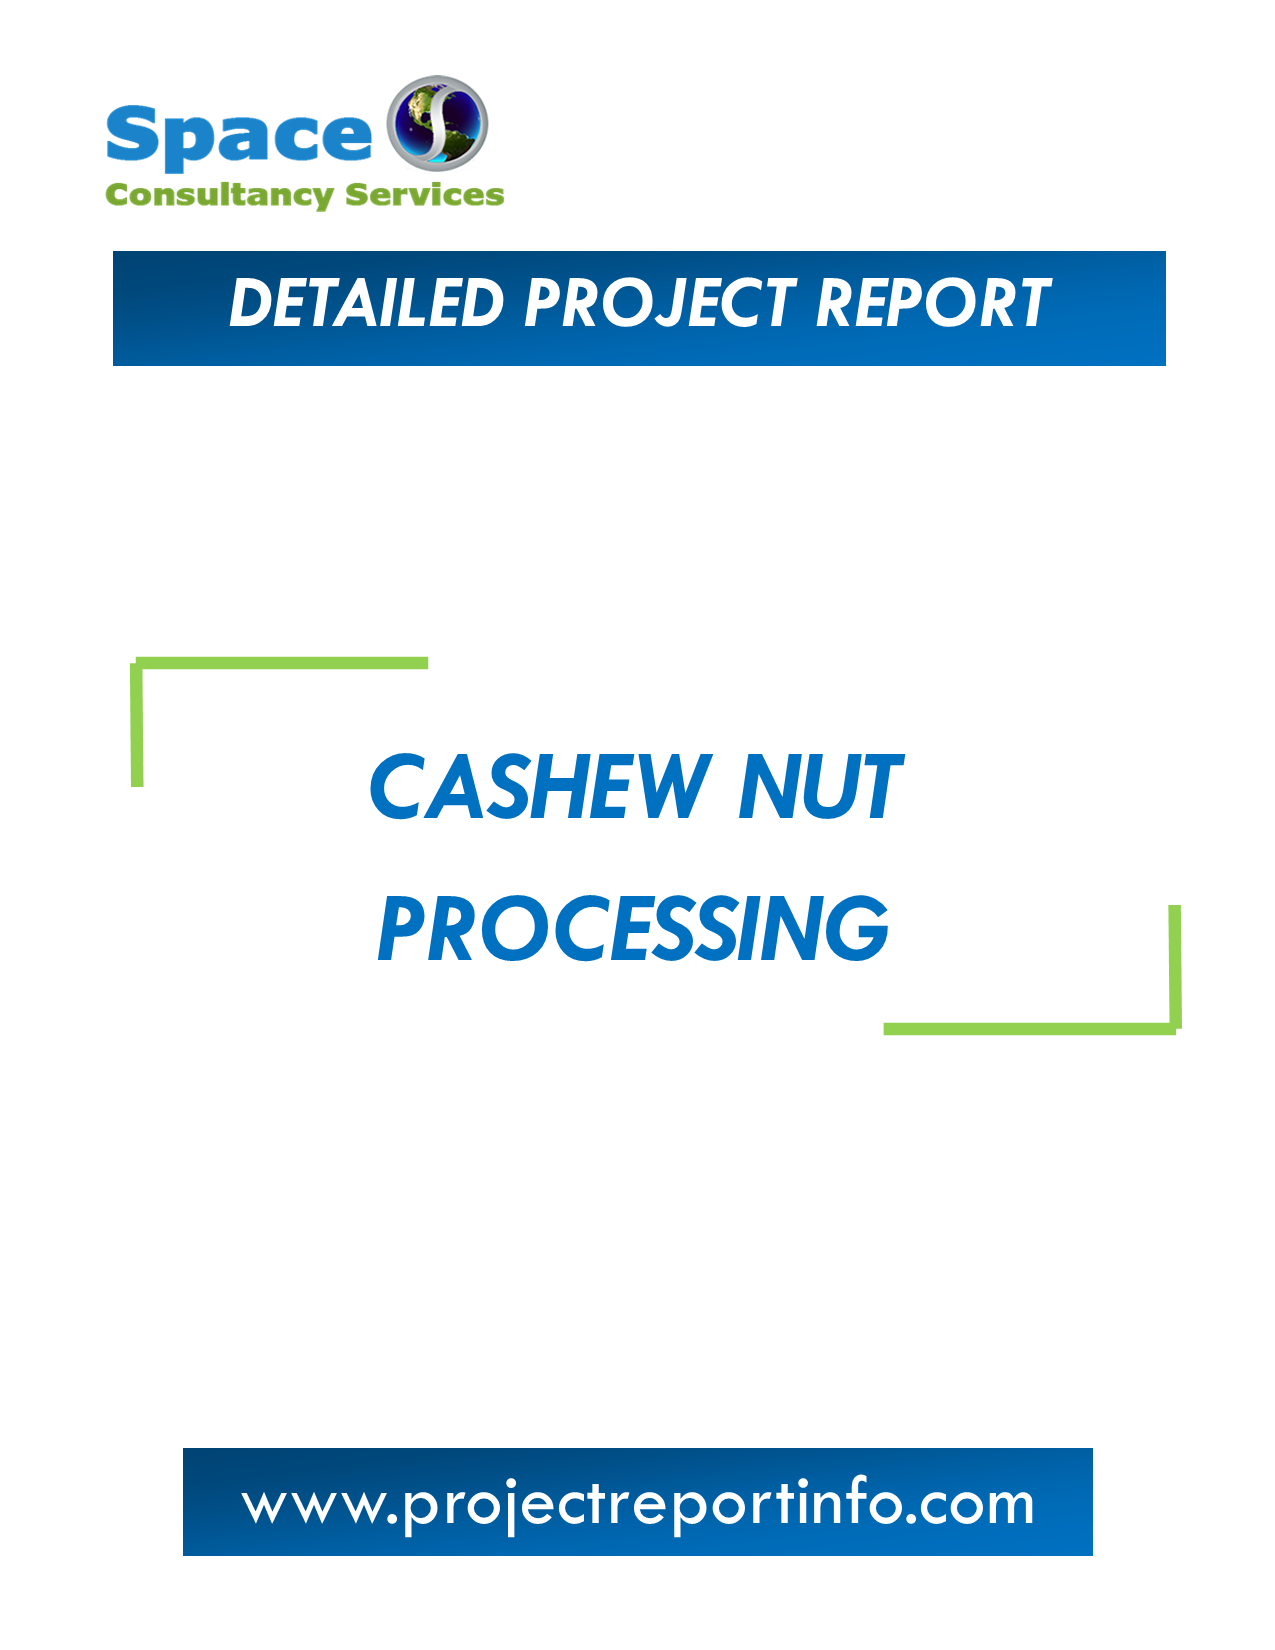 Project Report  on Cashew Nut Processing